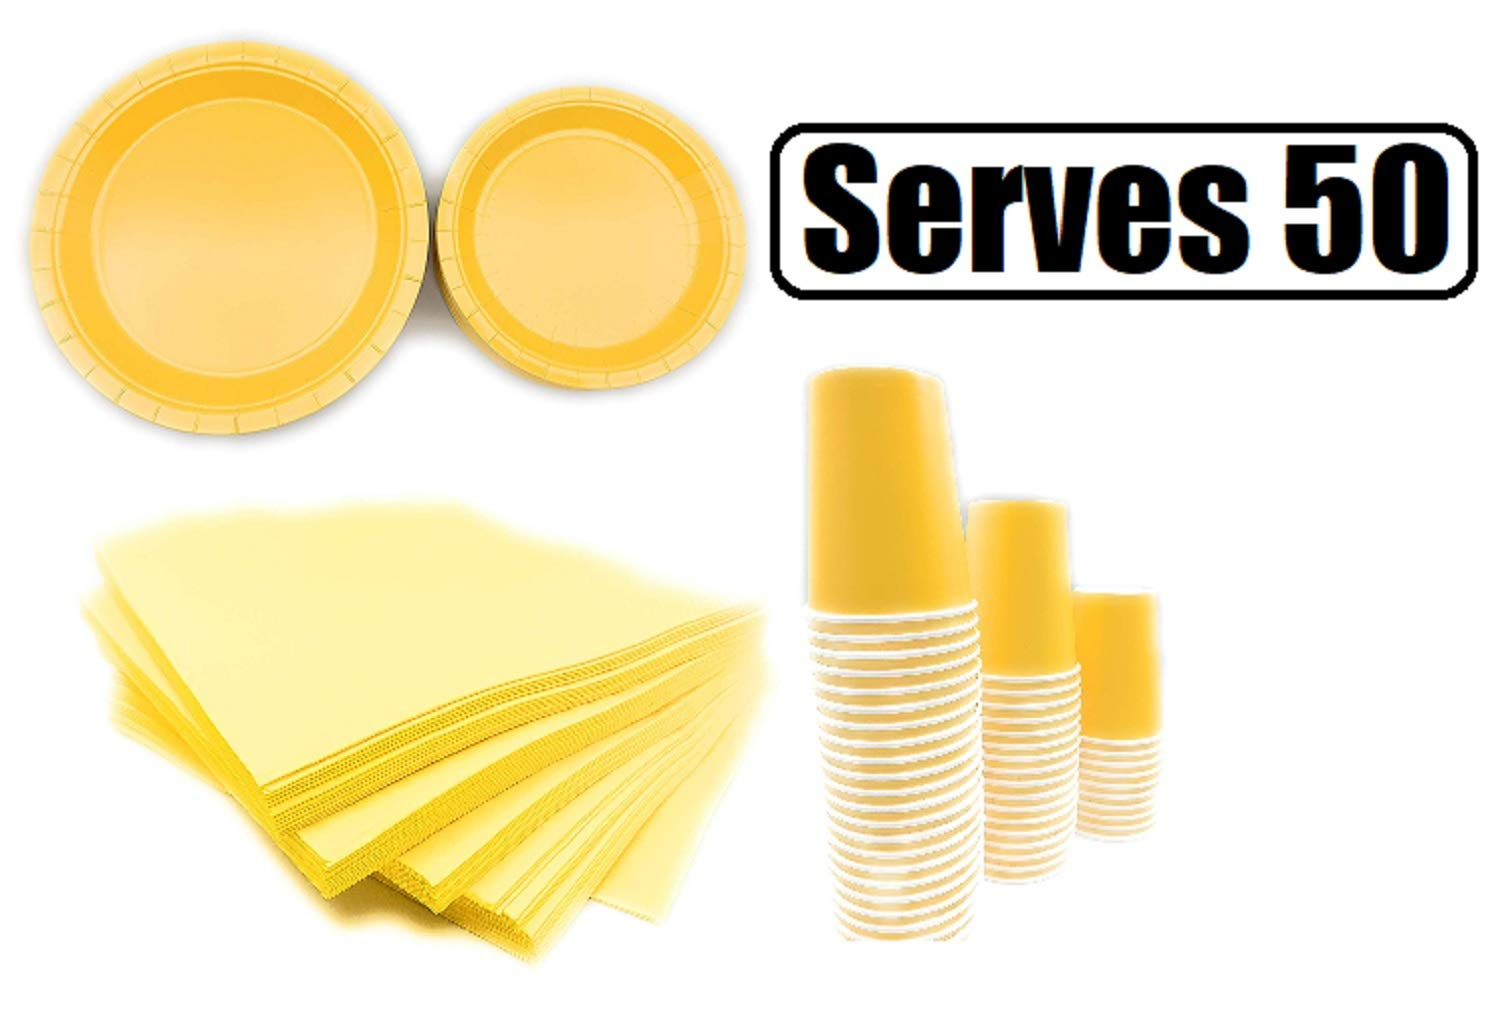 Serves 50 | Complete Party Pack | Yellow | 9'' Dinner Paper Plates | 7'' Dessert Paper Plates | 9 oz Cups | 3 Ply Napkins | office parties, birthday parties, festivals, Yellow Party Theme